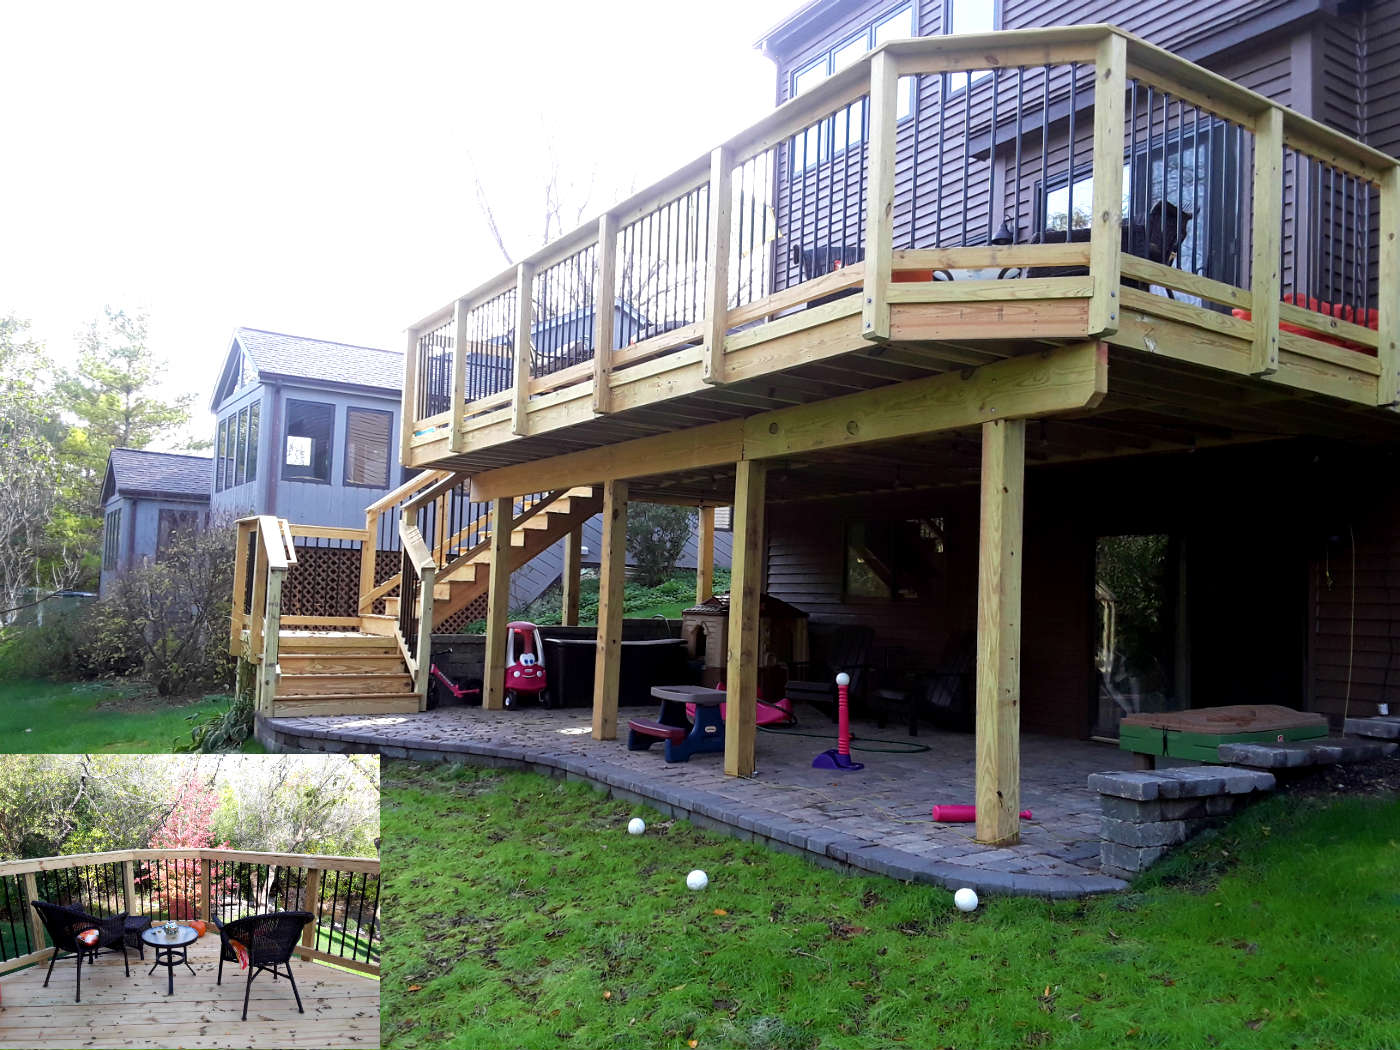 Multi Level Wood Deck And Belgard Paver Patio Design By Woodridge, IL Deck  Designer Thumbnail